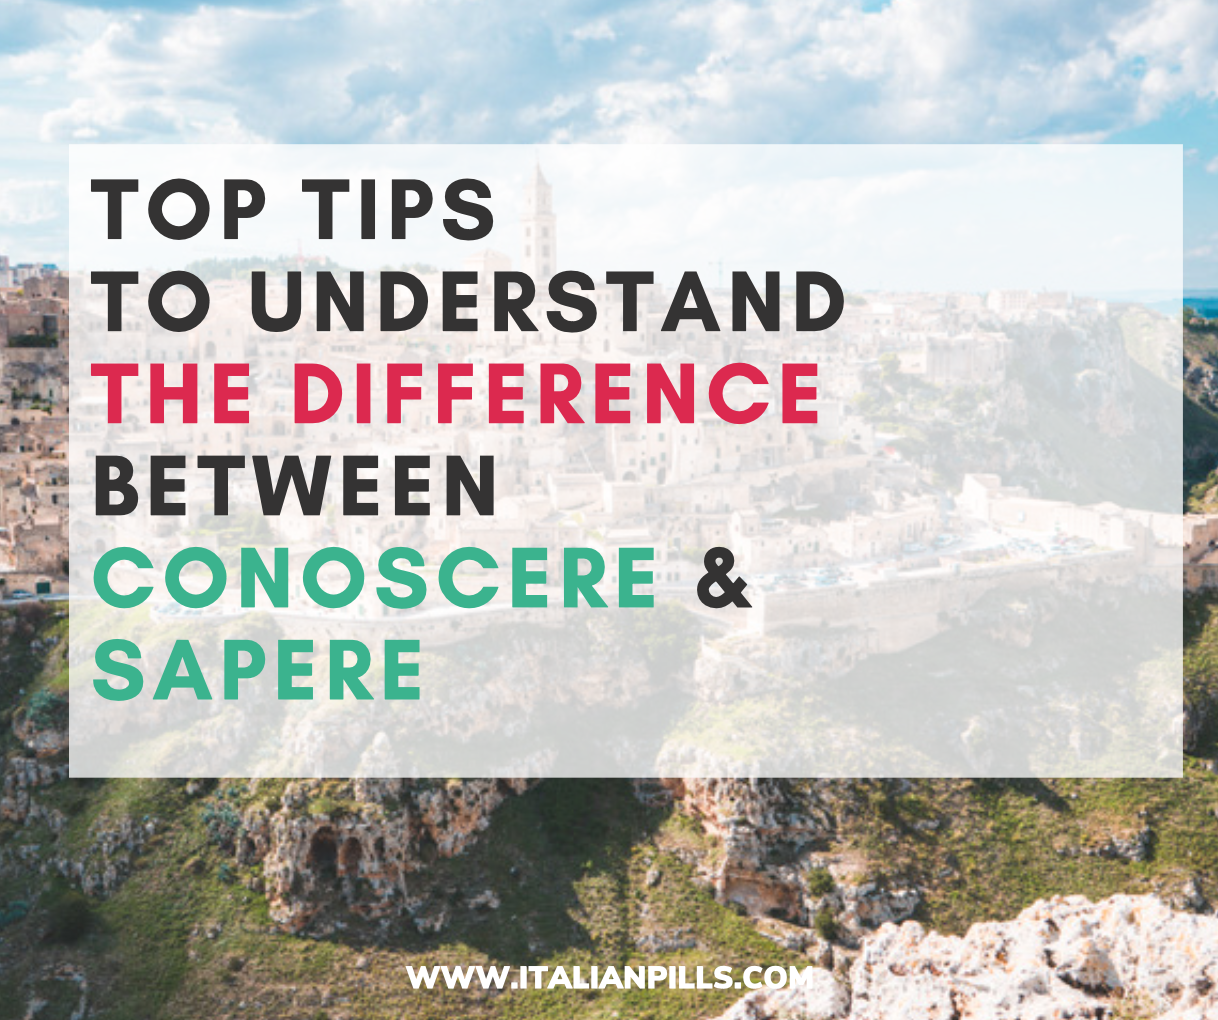 SAPERE vs CONOSCERE: What is the difference?